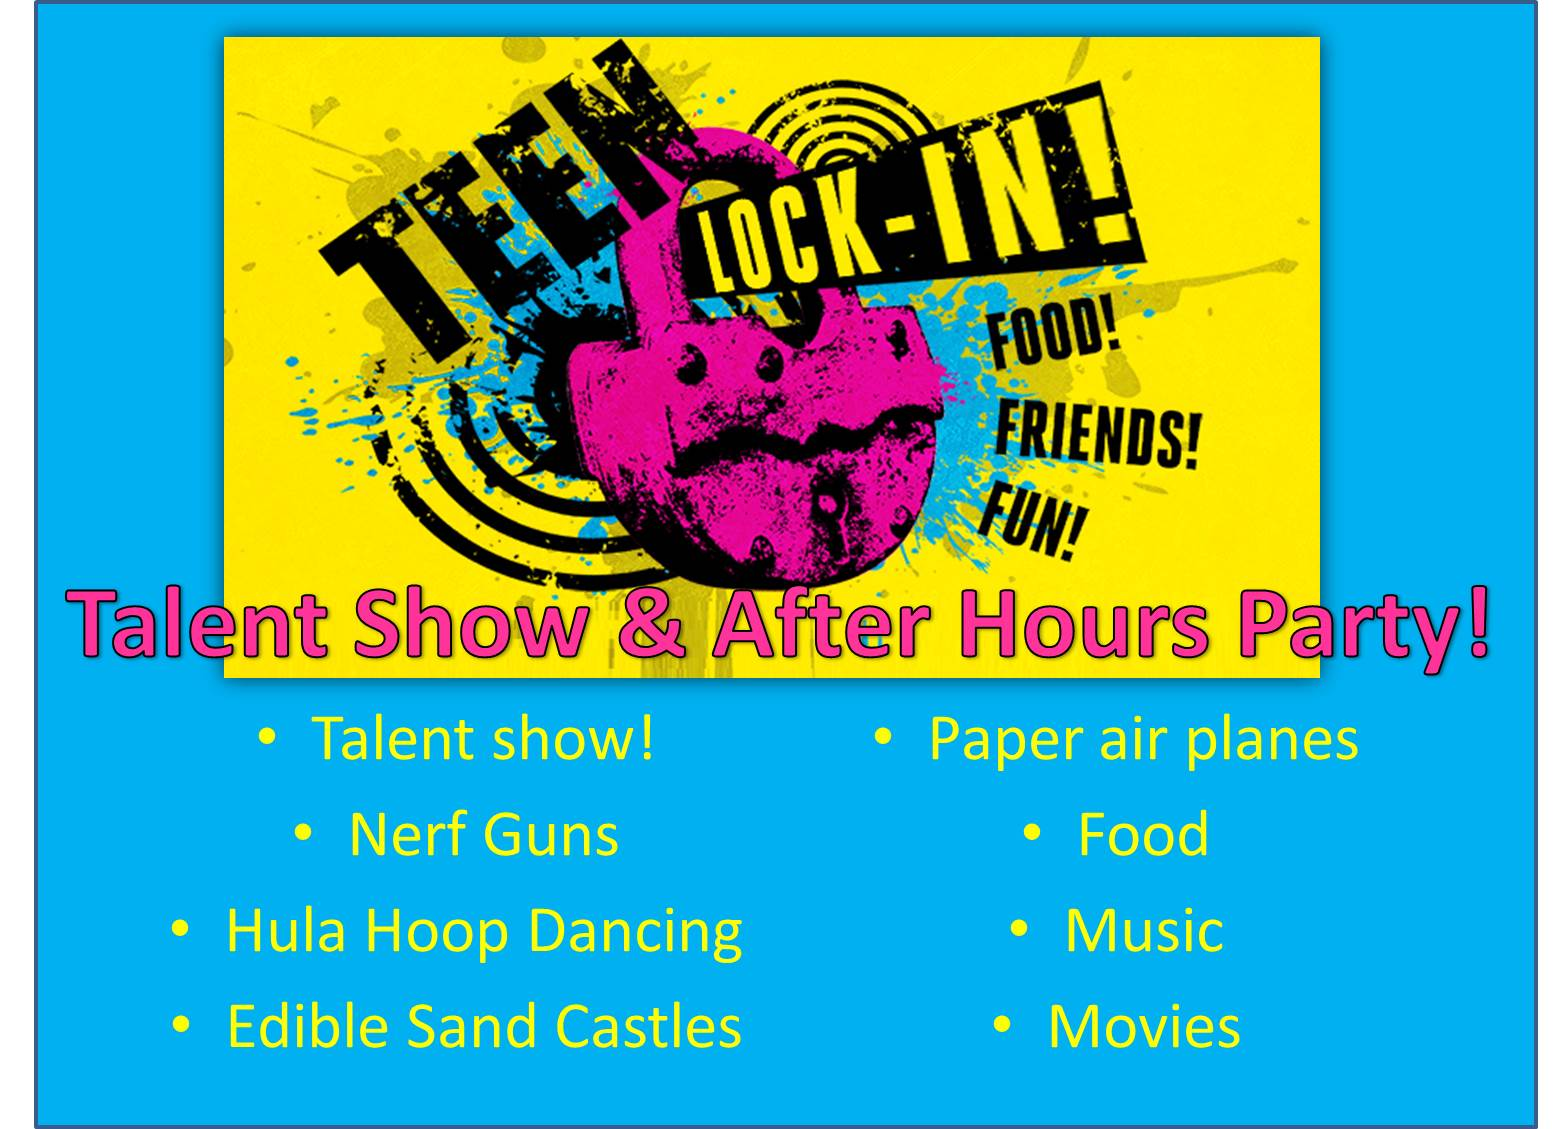 Teen Lock In - Talent Show & After Hours Party